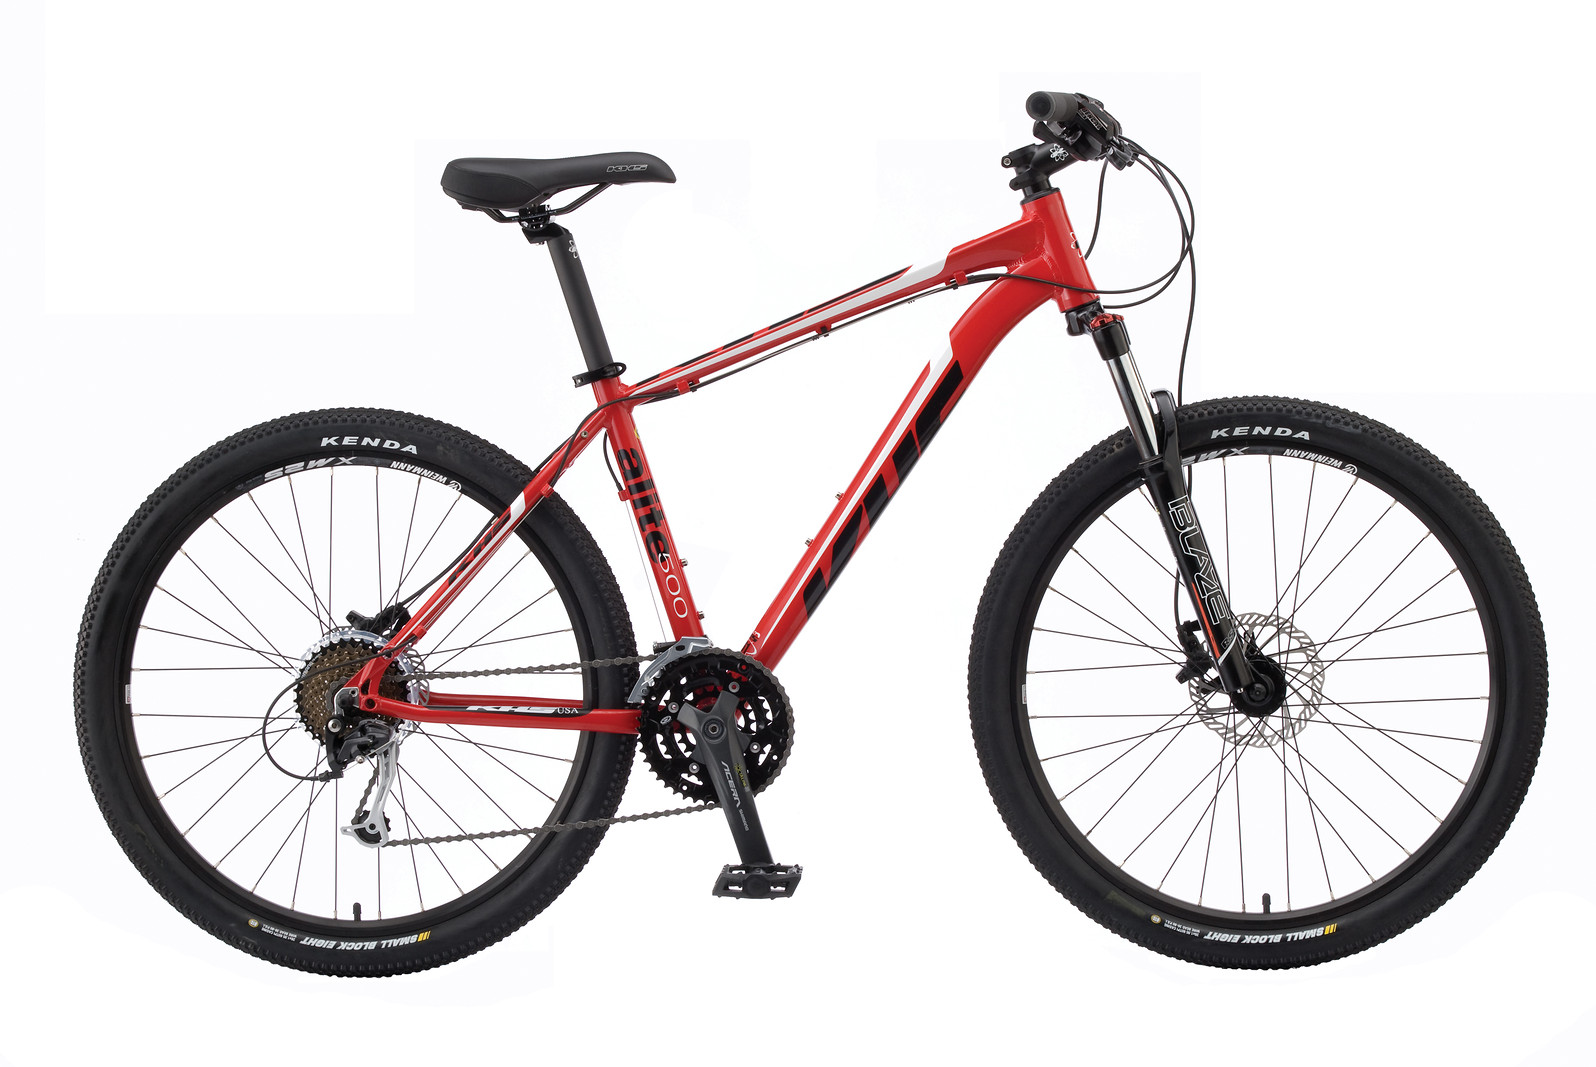 2013 KHS Alite 500 Bike 2013 Alite 500 - Red